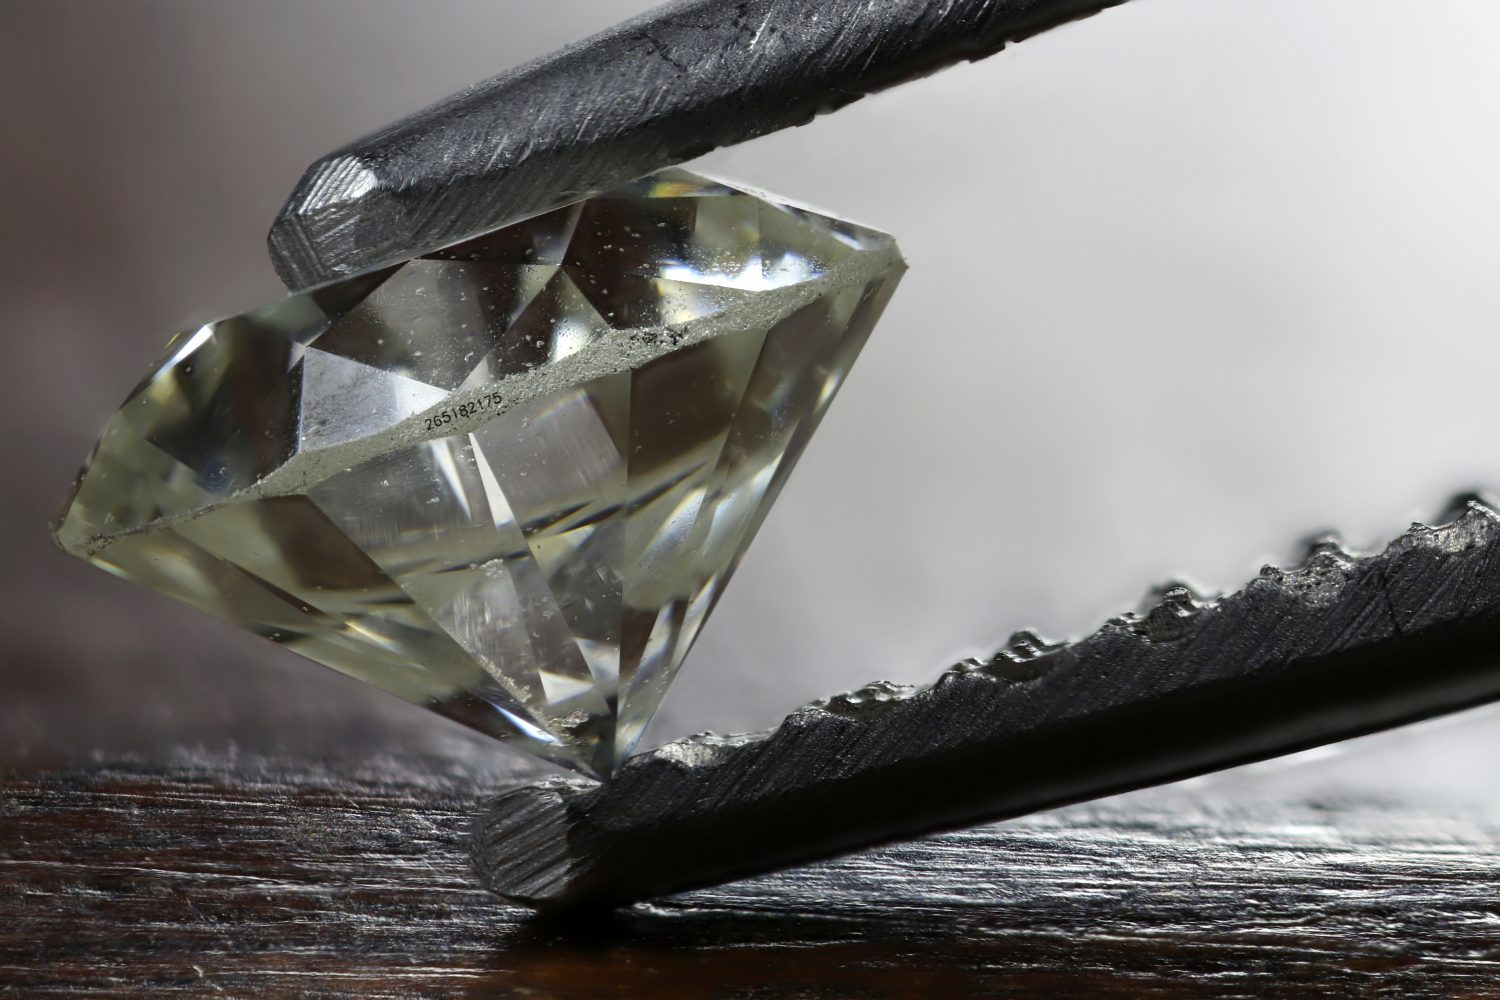 New Blockchain App Claims Its Already Tracking 760,000 Diamonds - CoinDesk